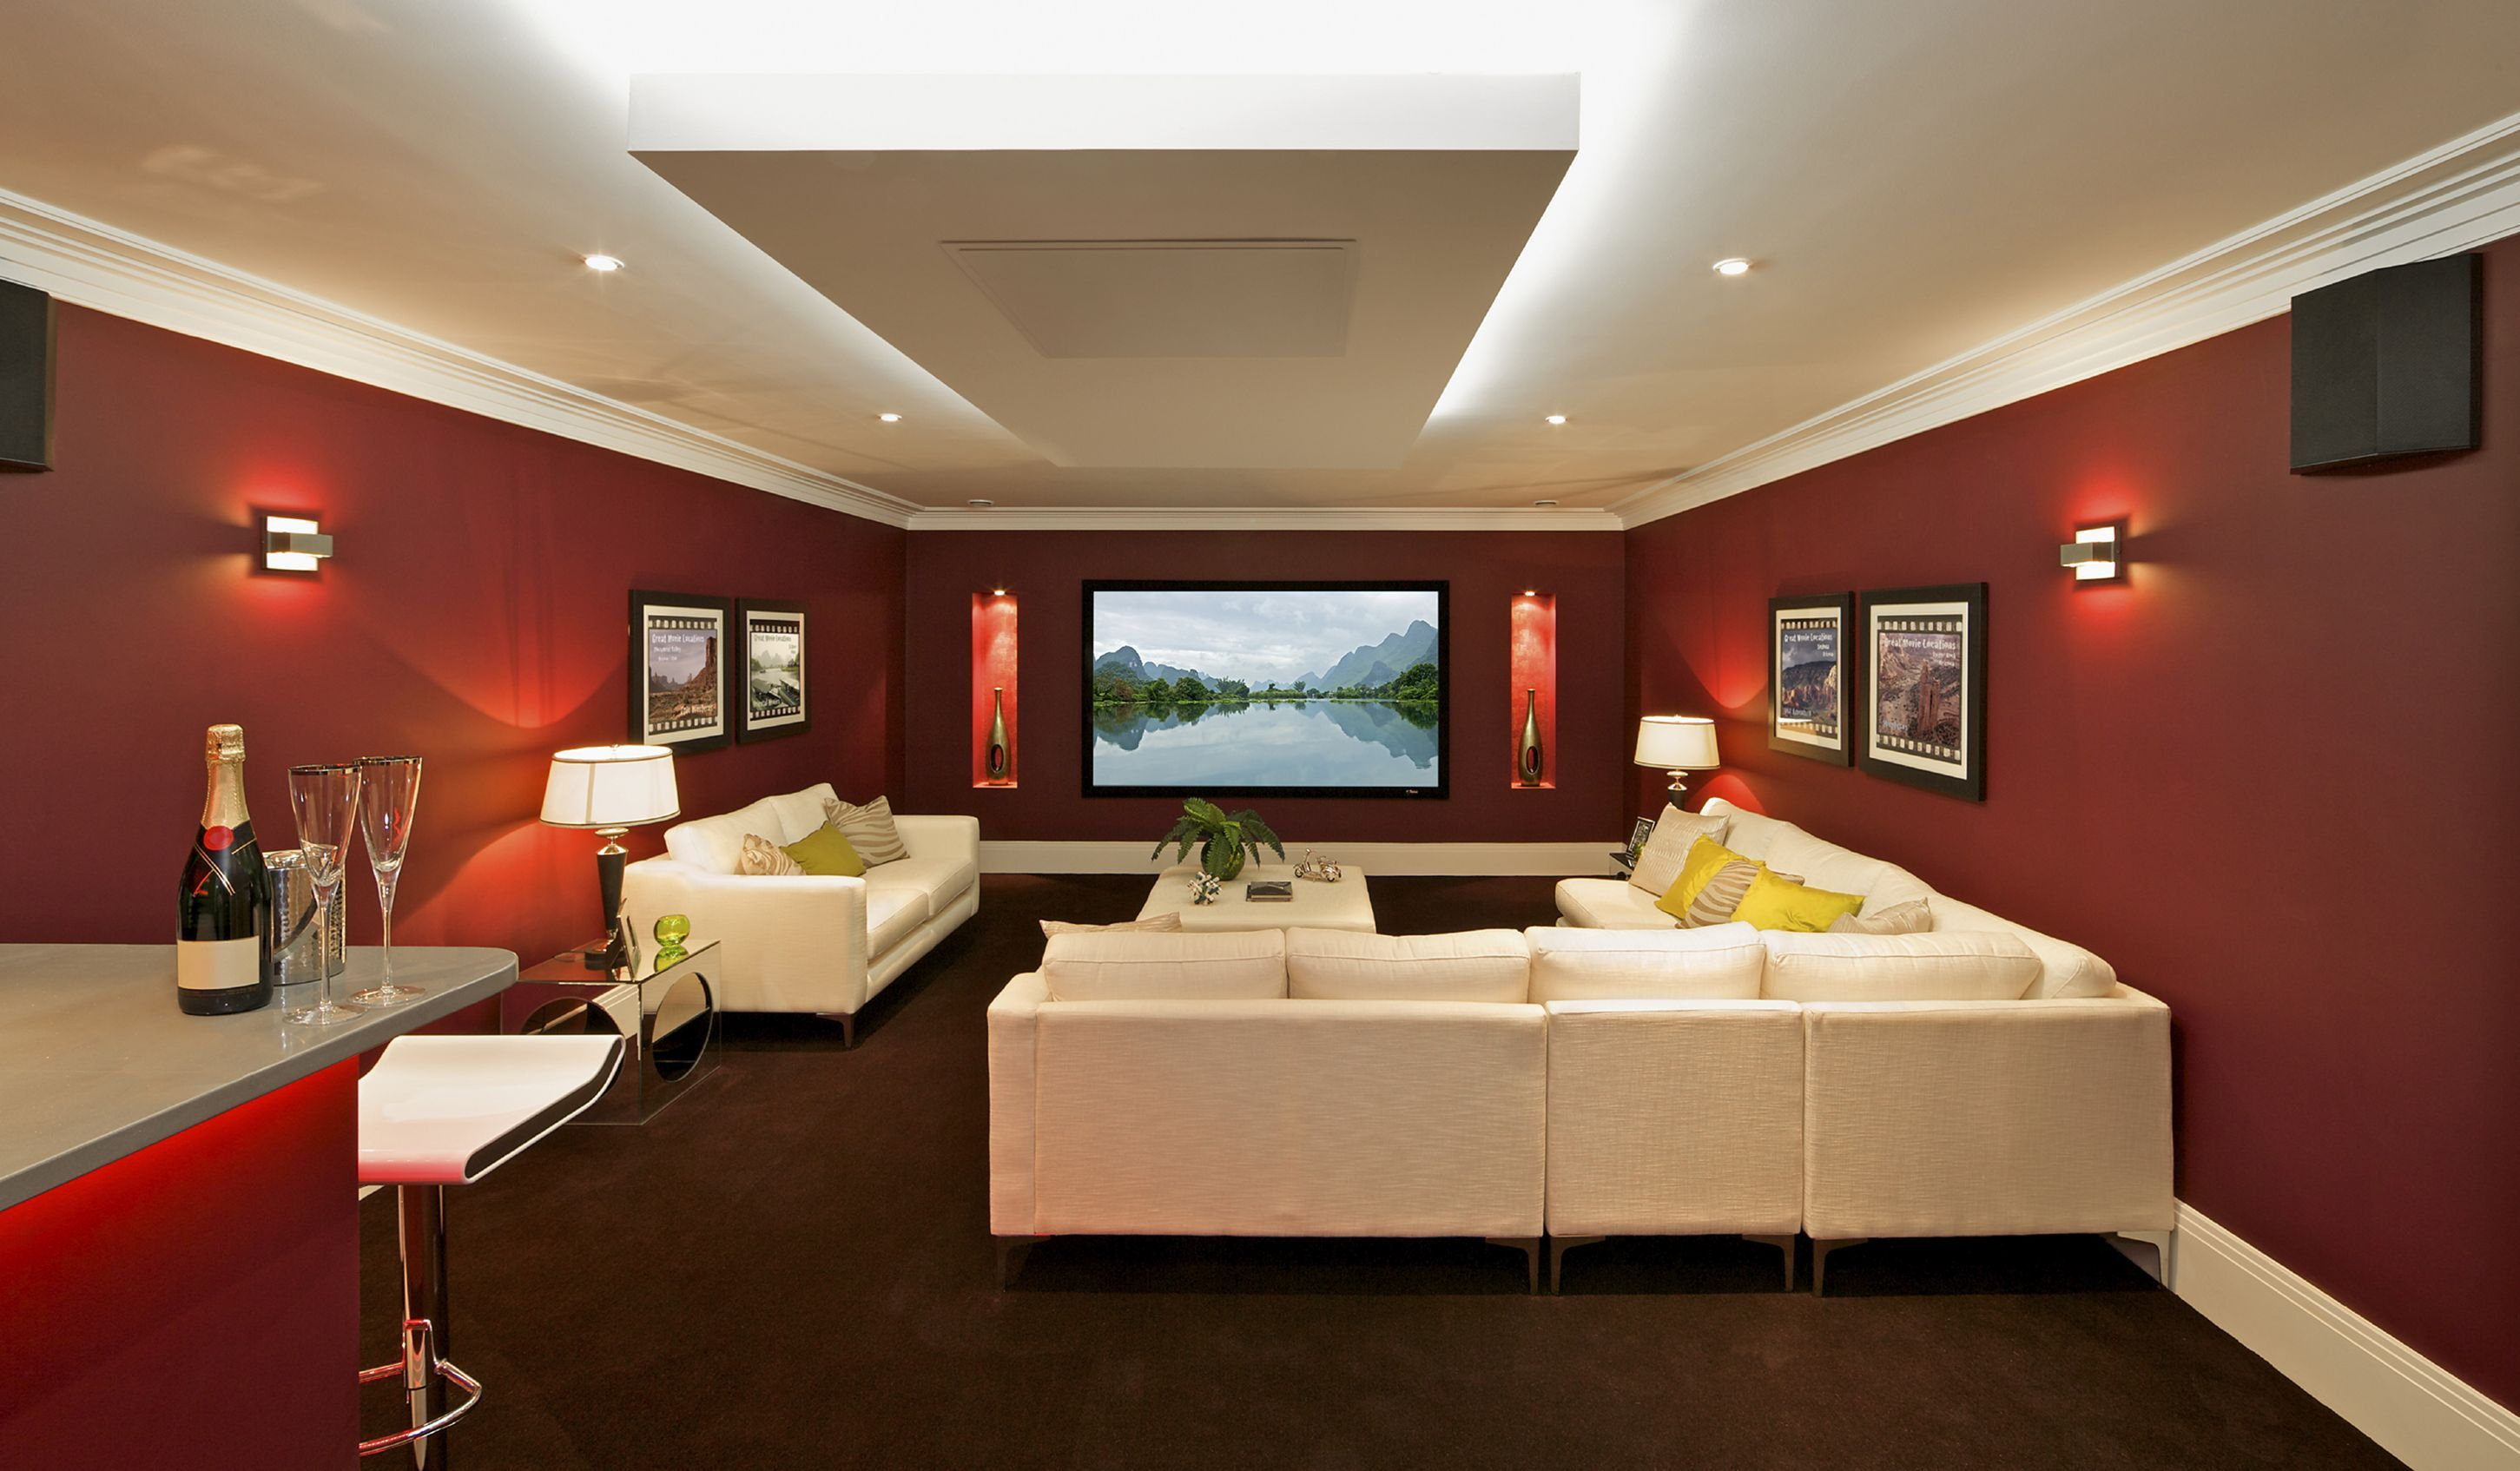 27 Amazing Home Entertainment Center Ideas That People Will Love It With Images Home Theater Rooms Home Theater Seating Theater Room Decor